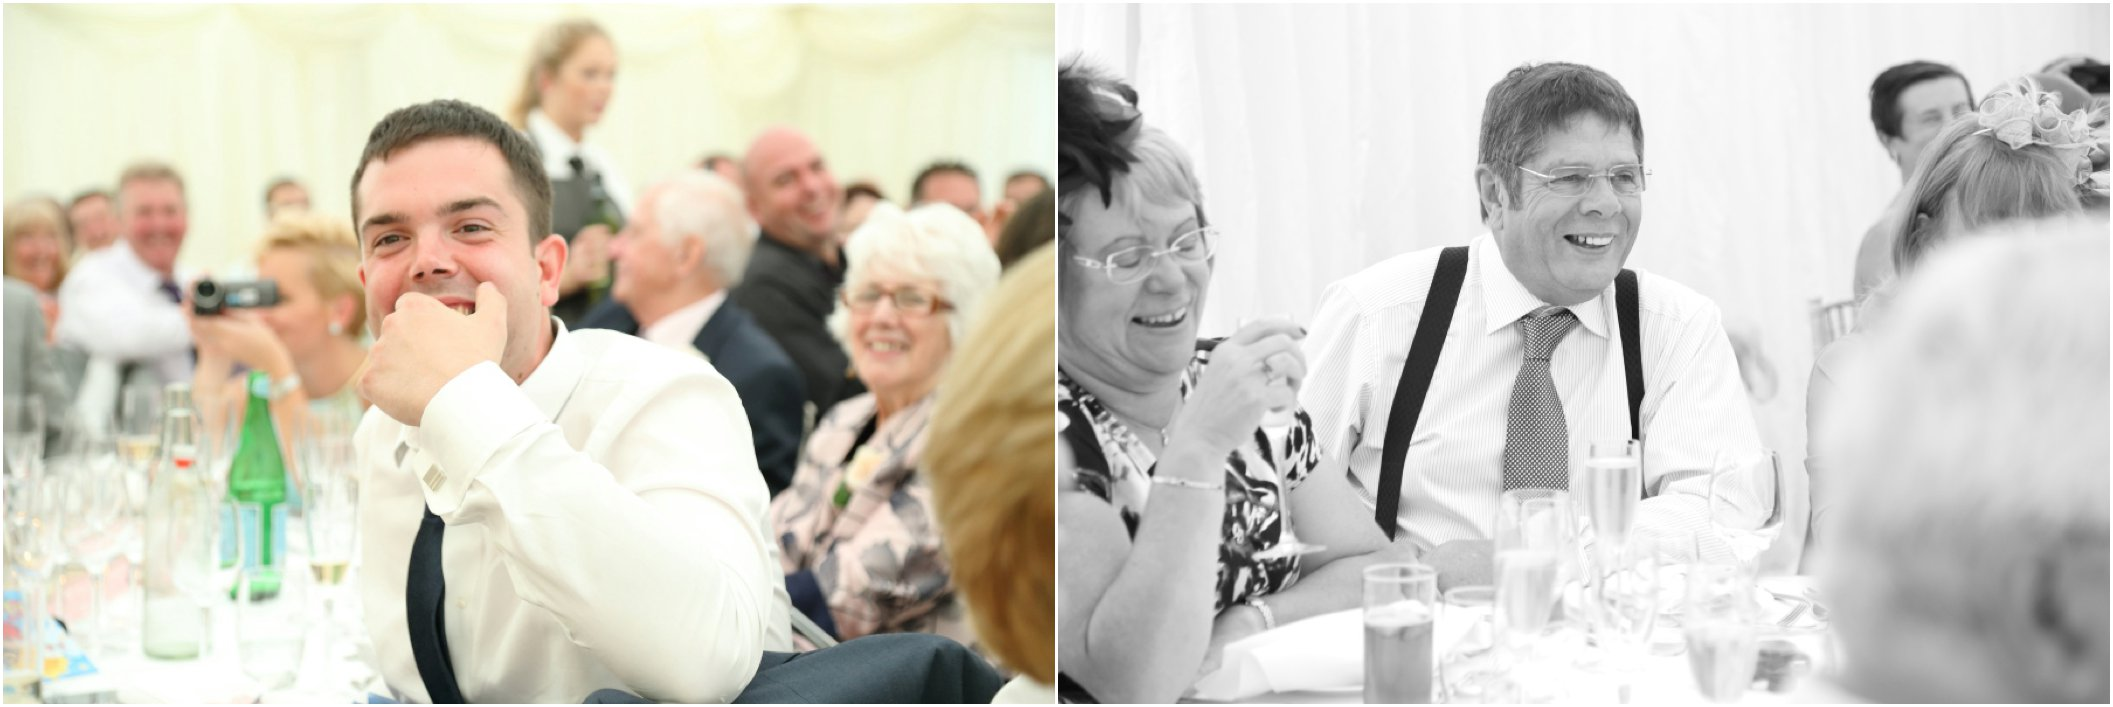 essex wedding photography laughing guests